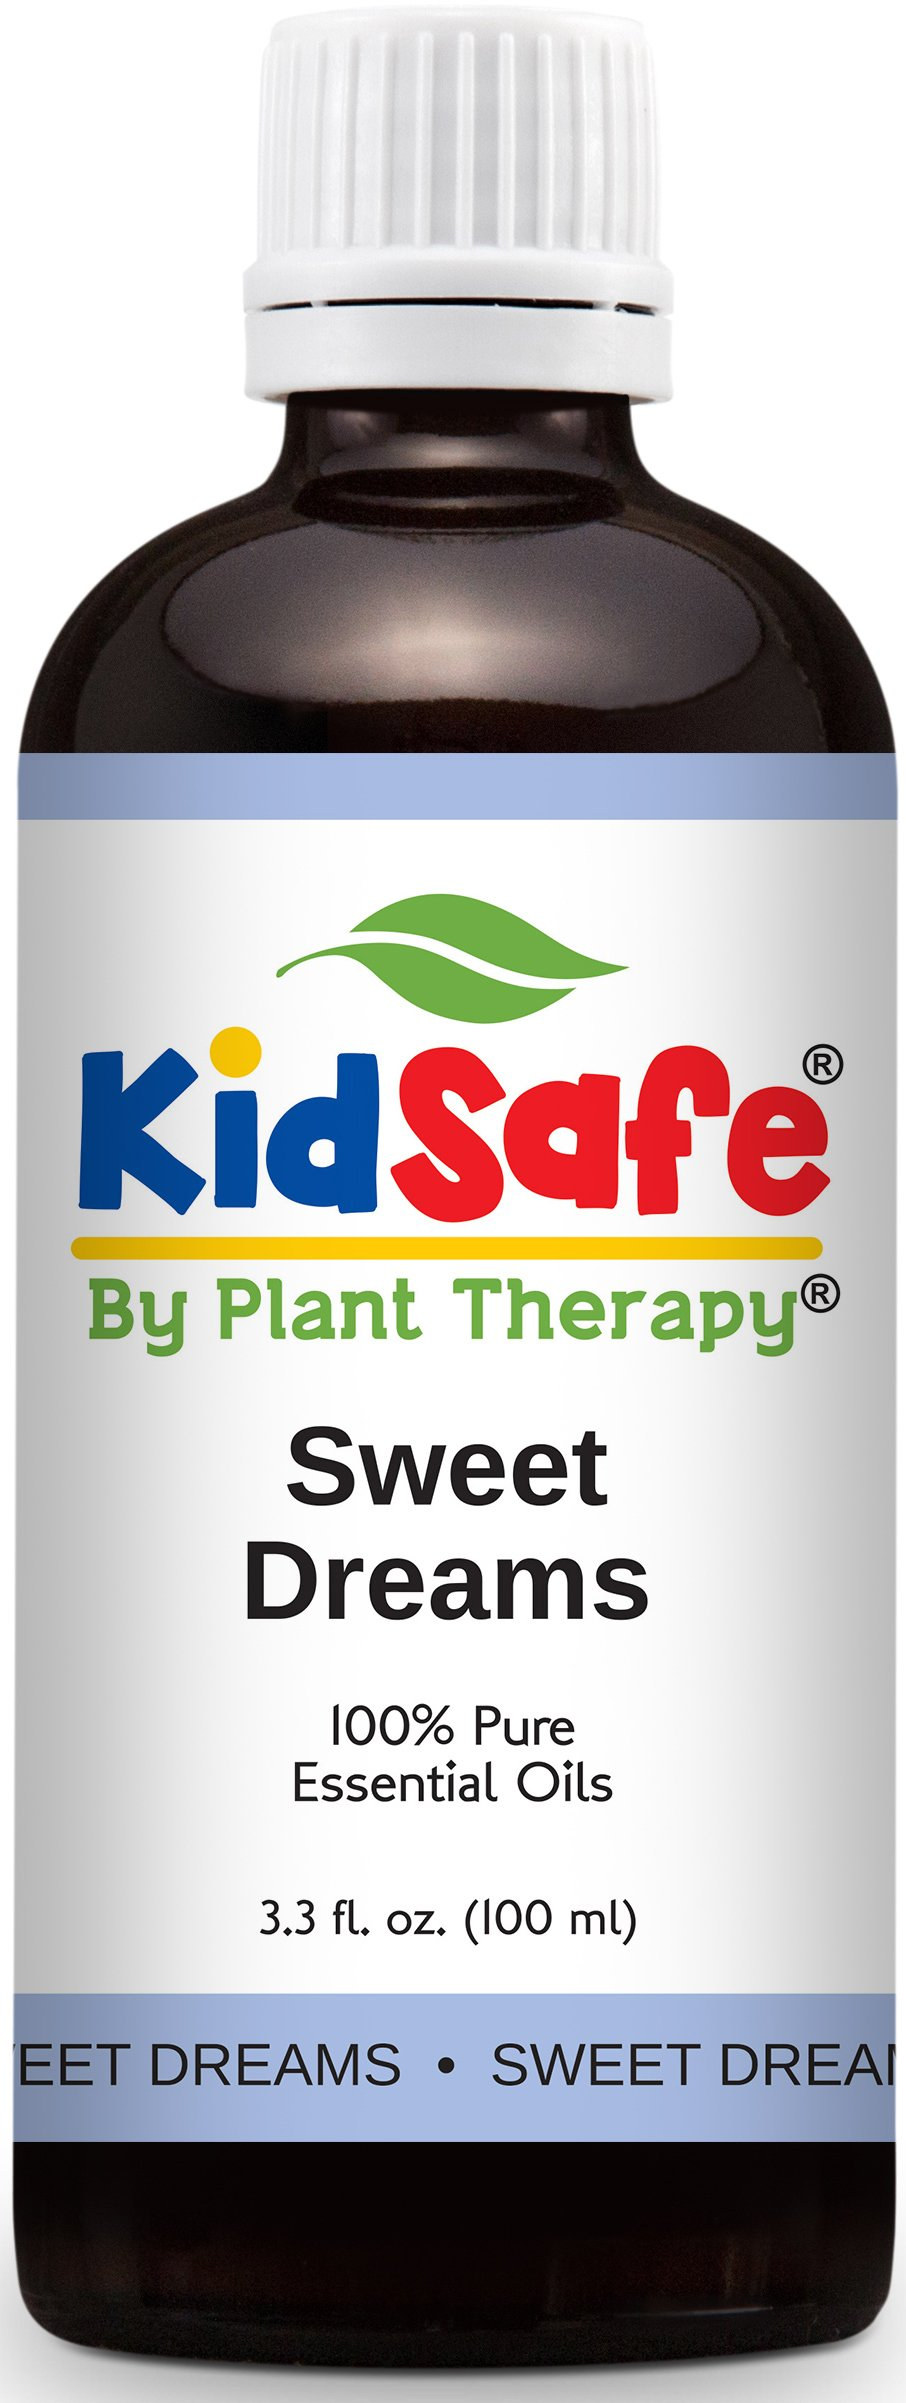 Plant Therapy KidSafe Sweet Dreams Synergy Essential Oil 100 mL (3.3 oz) 100% Pure, Undiluted, Therapeutic Grade by Plant Therapy